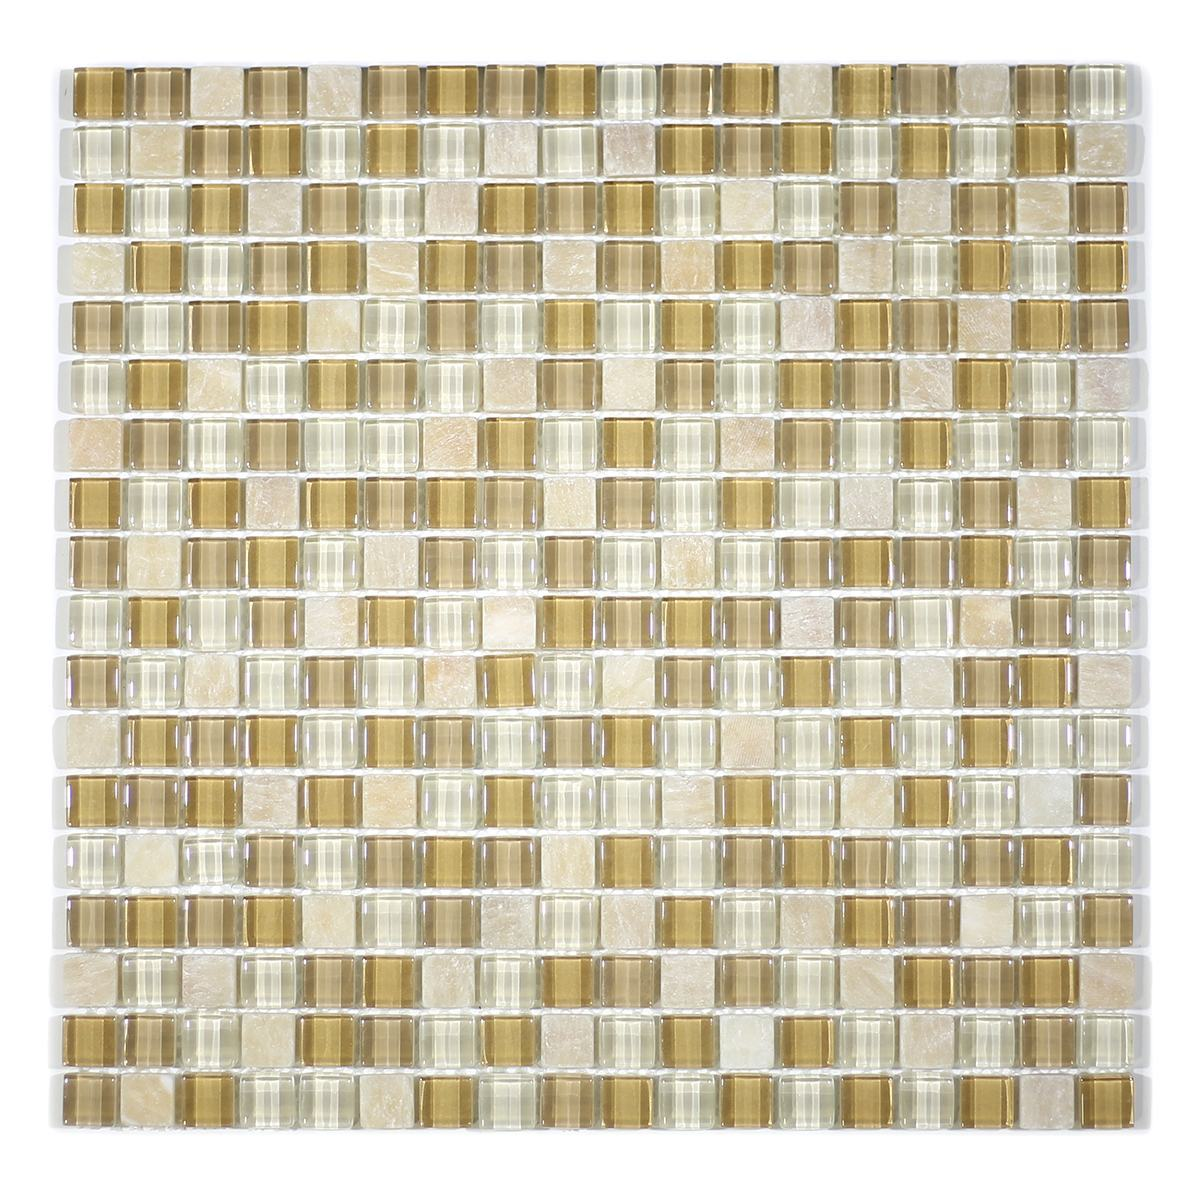 "MA12-S  5/8"" SQUARE GLASS AND STONE MOSAIC BLEND"